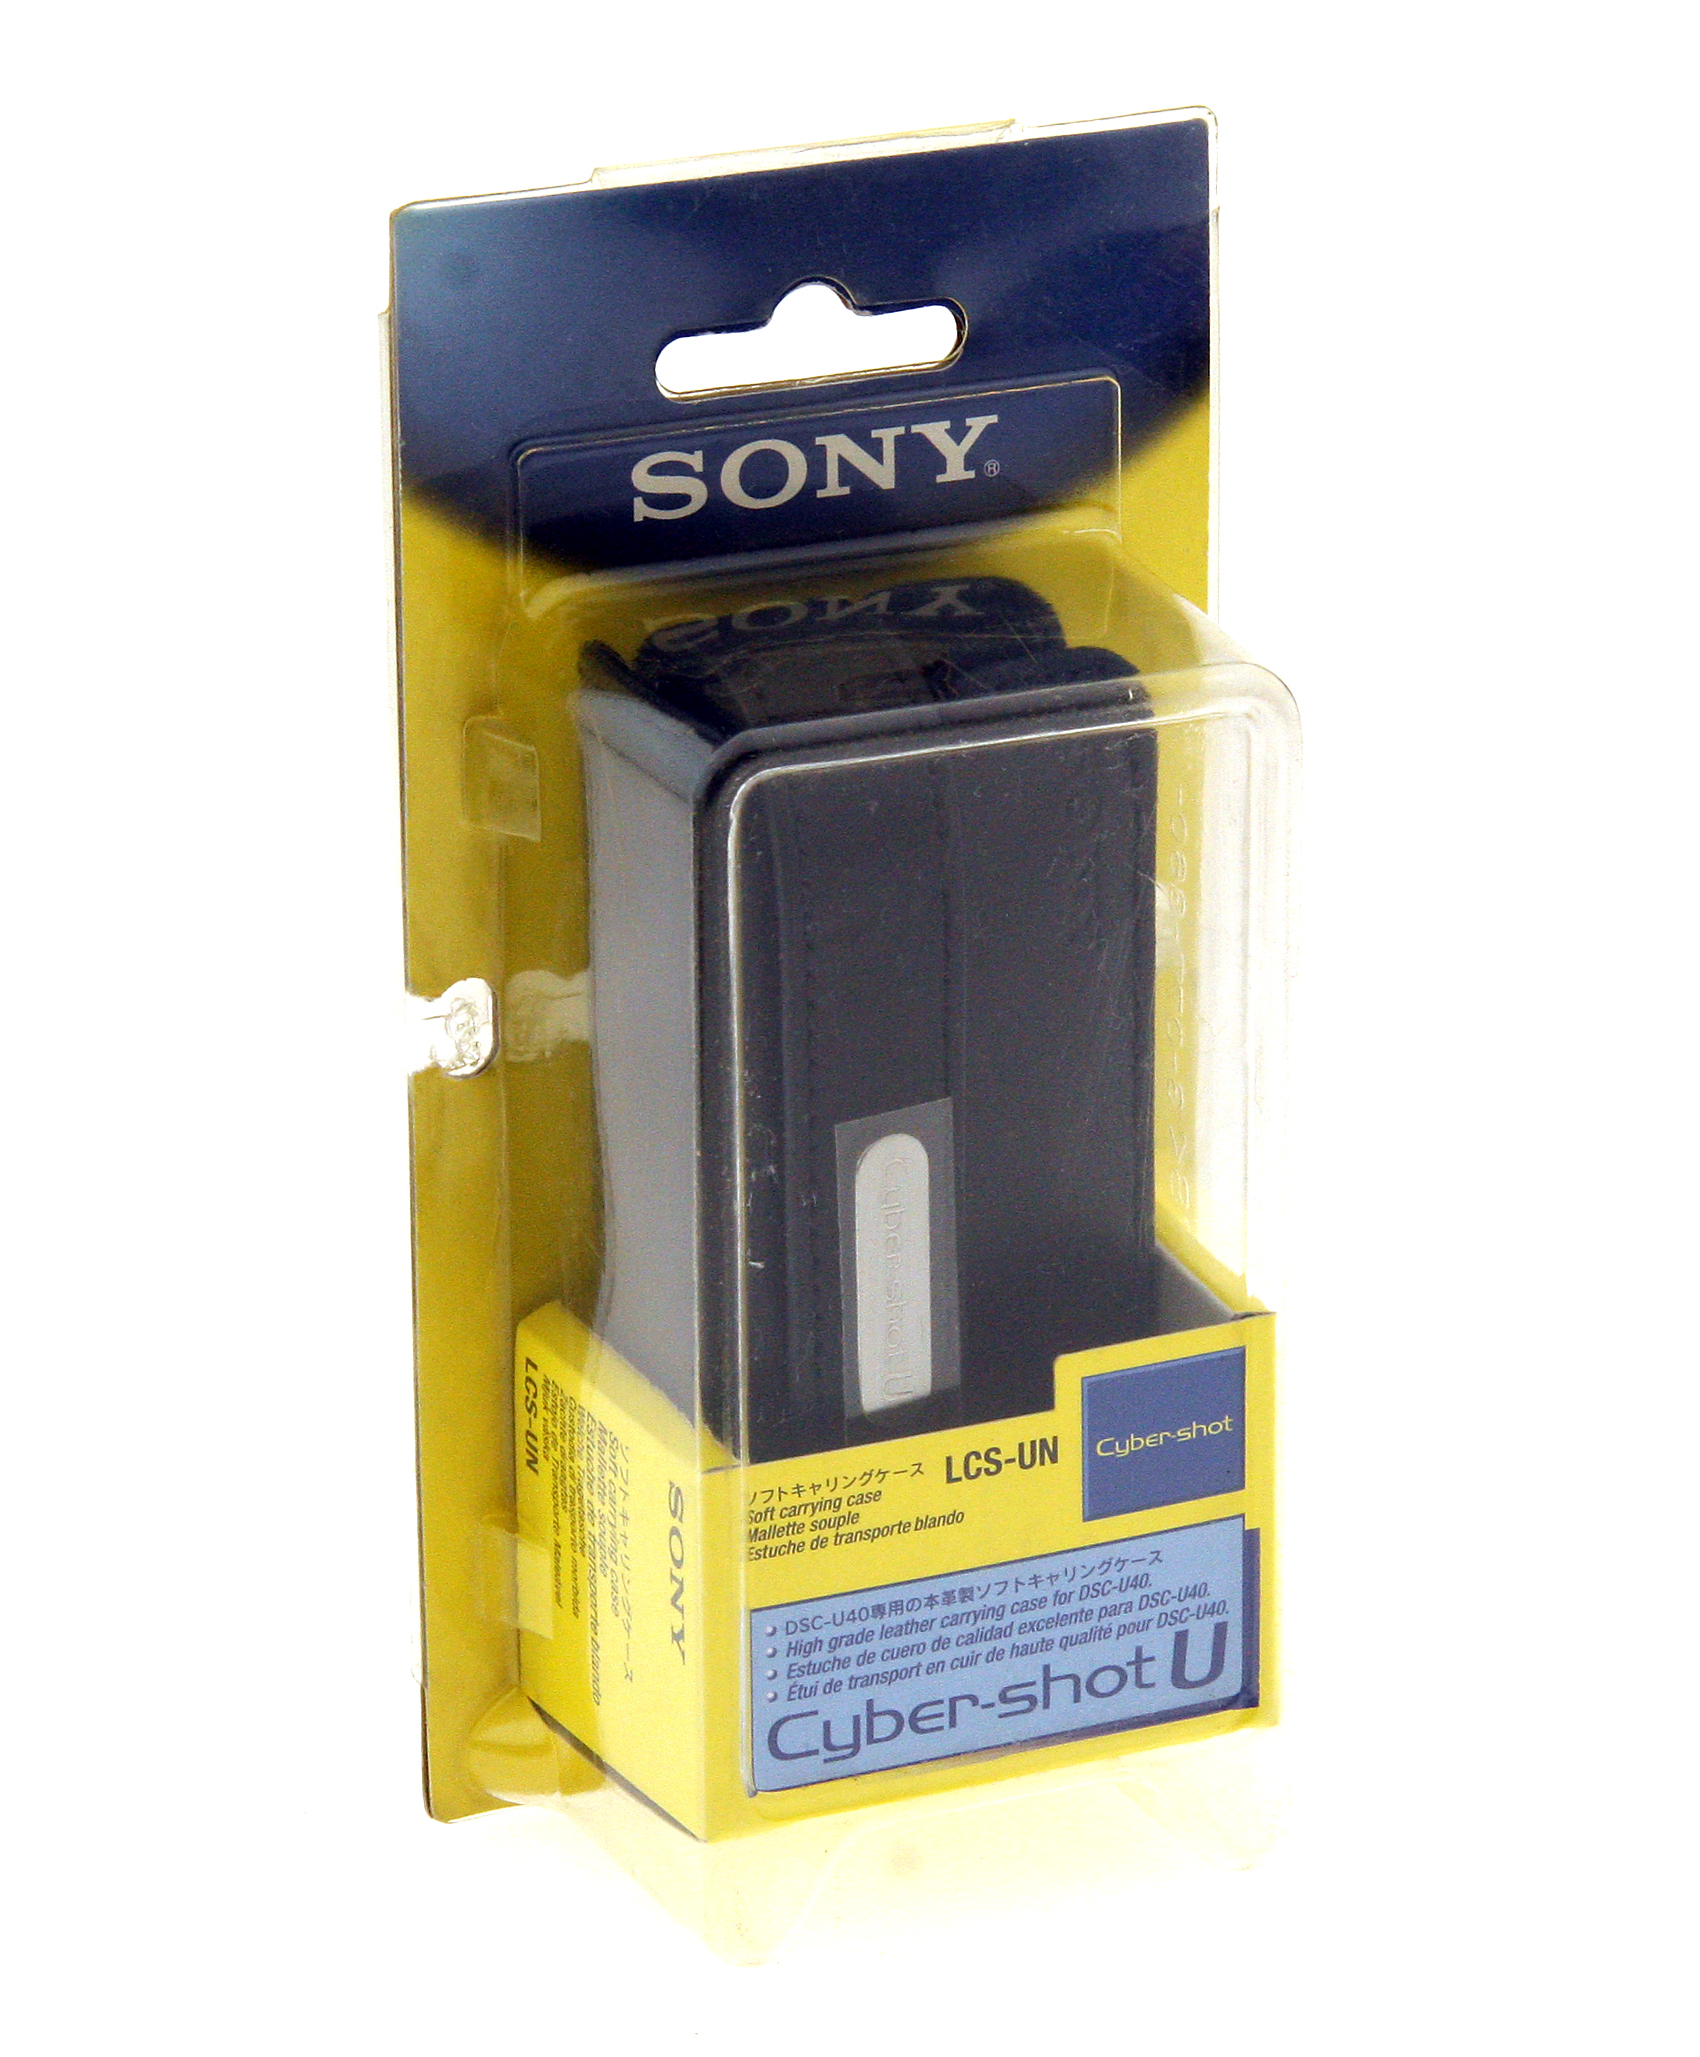 LCS-UN Soft Leather Case - for Sony DSC-U40